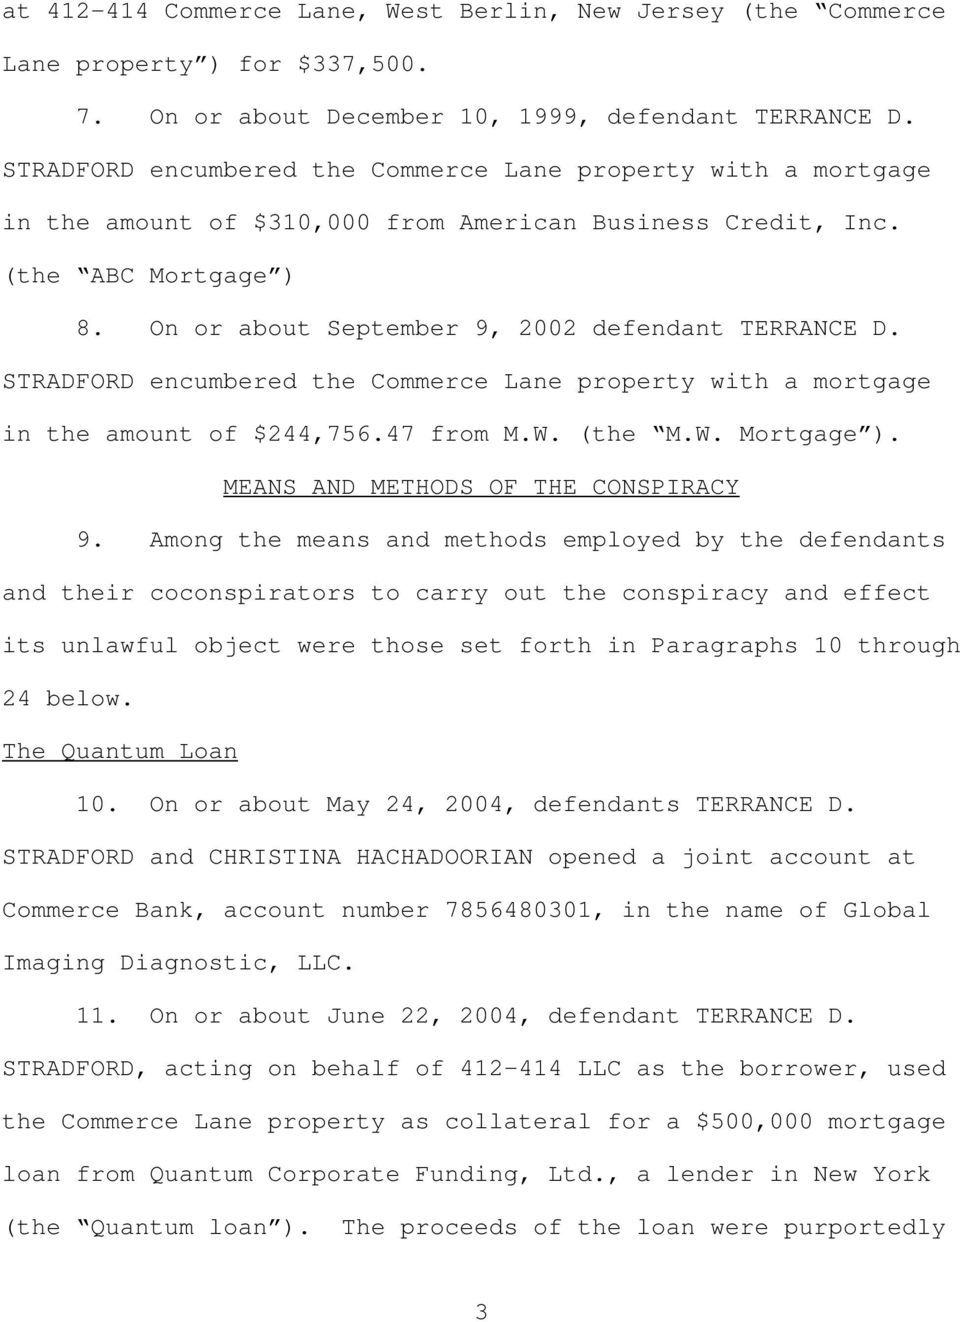 STRADFORD encumbered the Commerce Lane property with a mortgage in the amount of $244,756.47 from M.W. (the M.W. Mortgage ). MEANS AND METHODS OF THE CONSPIRACY 9.